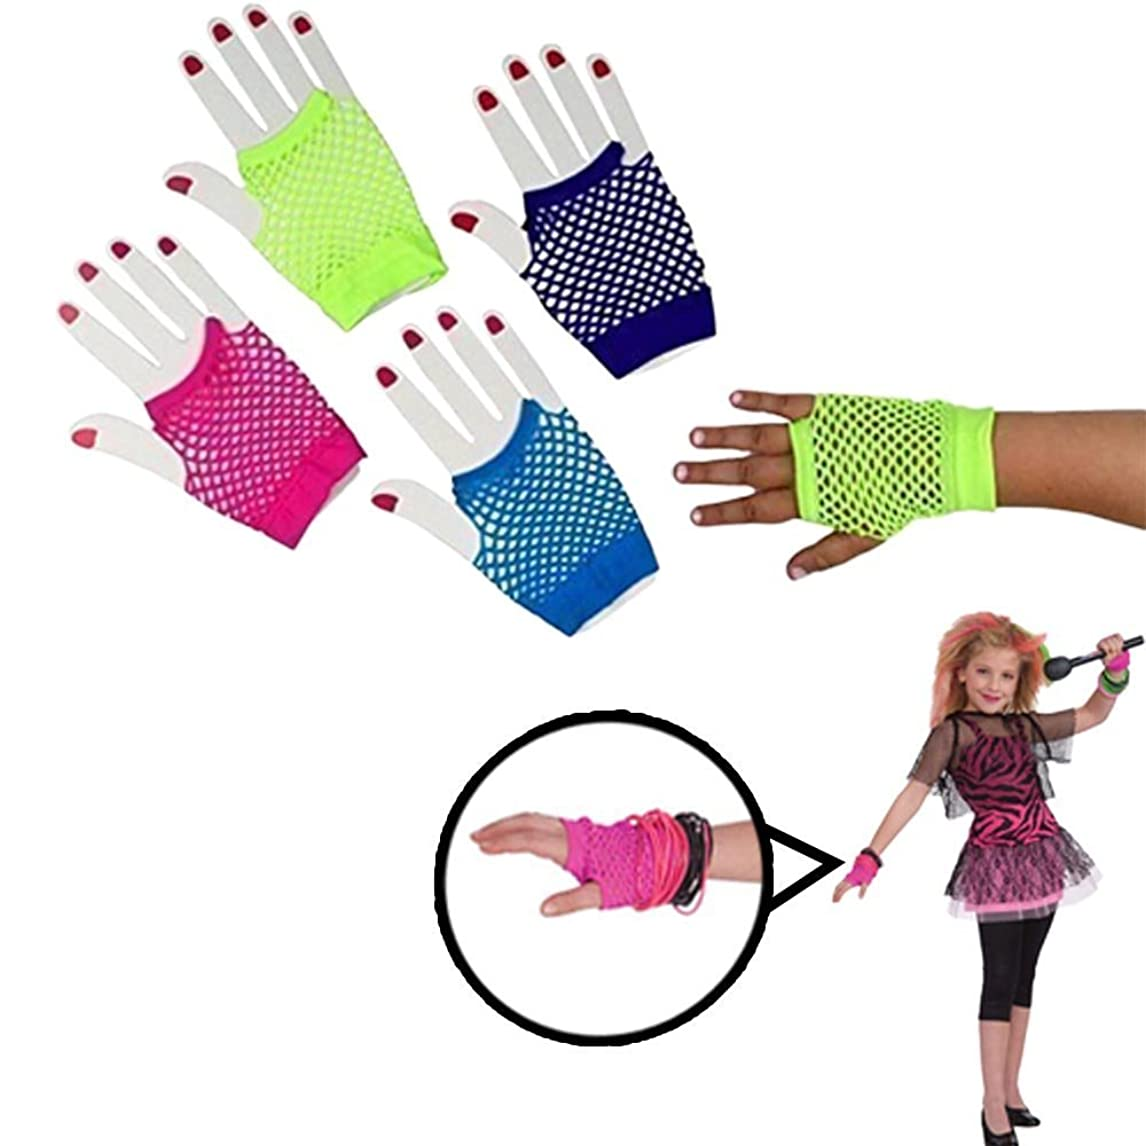 Gloves | Fishnet Fingerless Wrist Gloves| 6 Pack | 6 Assorted Colors | Kids and Adults | Dazzling Toys kkhll17888203570